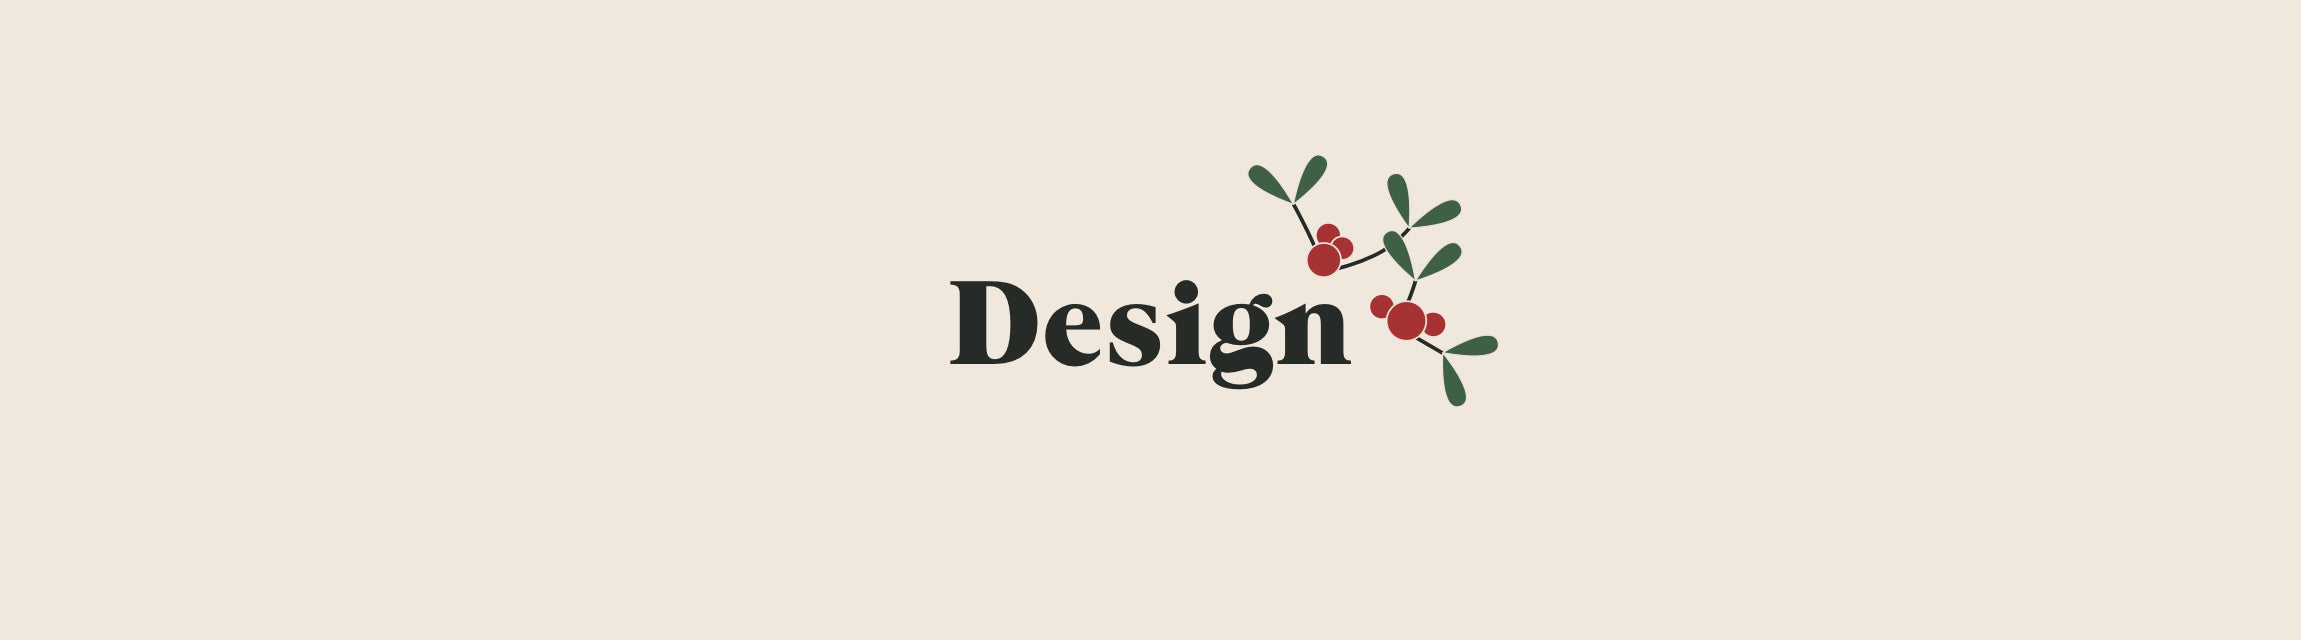 Design title with mistletoe icon